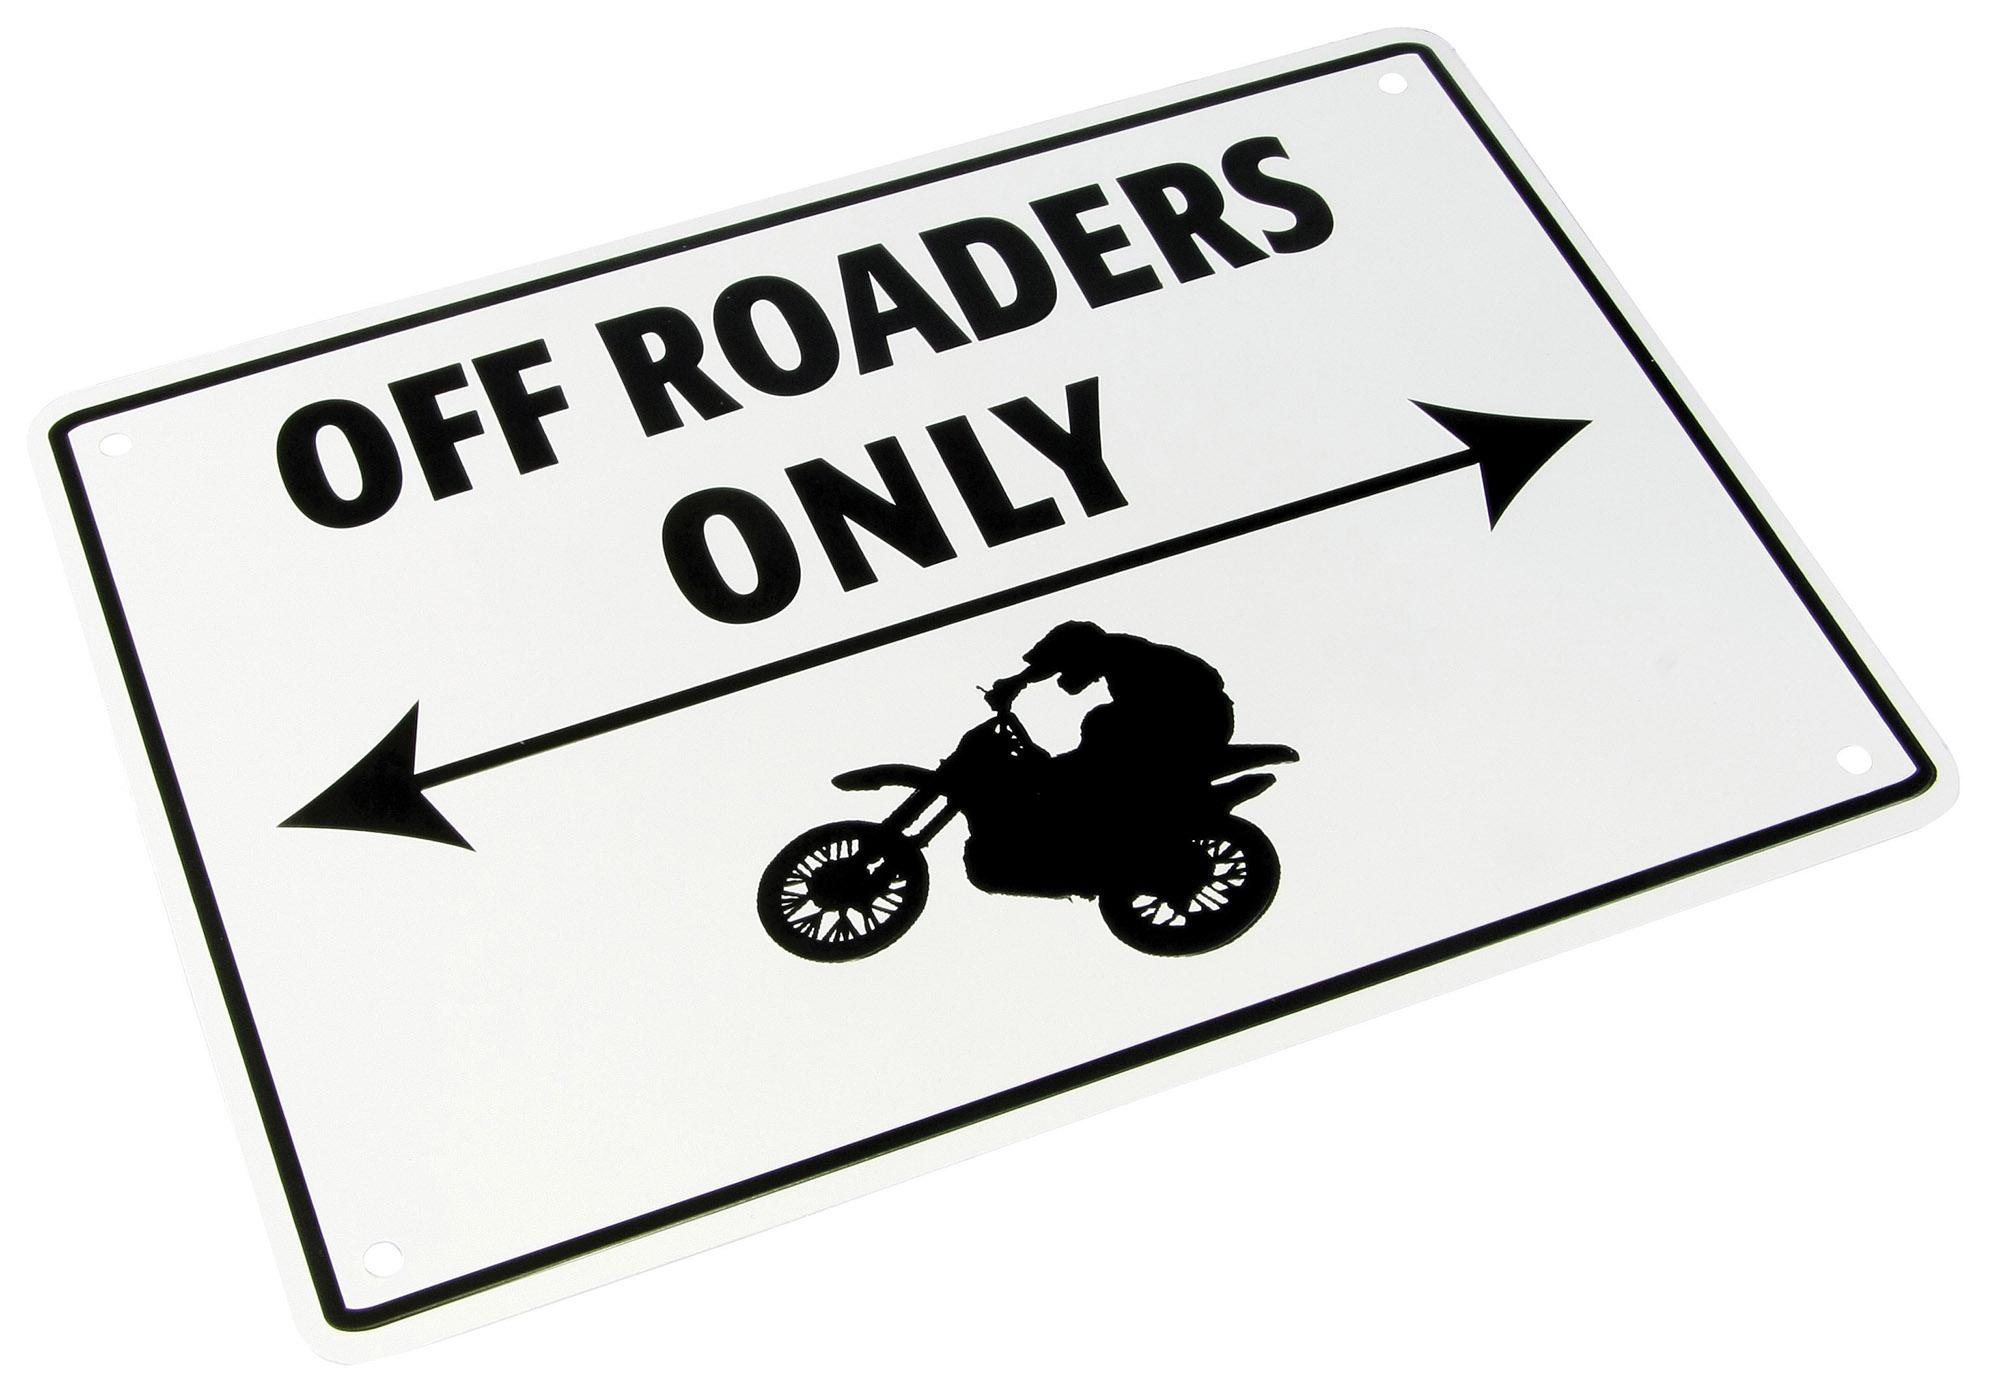 PARKING SIGN Off Roaders Only